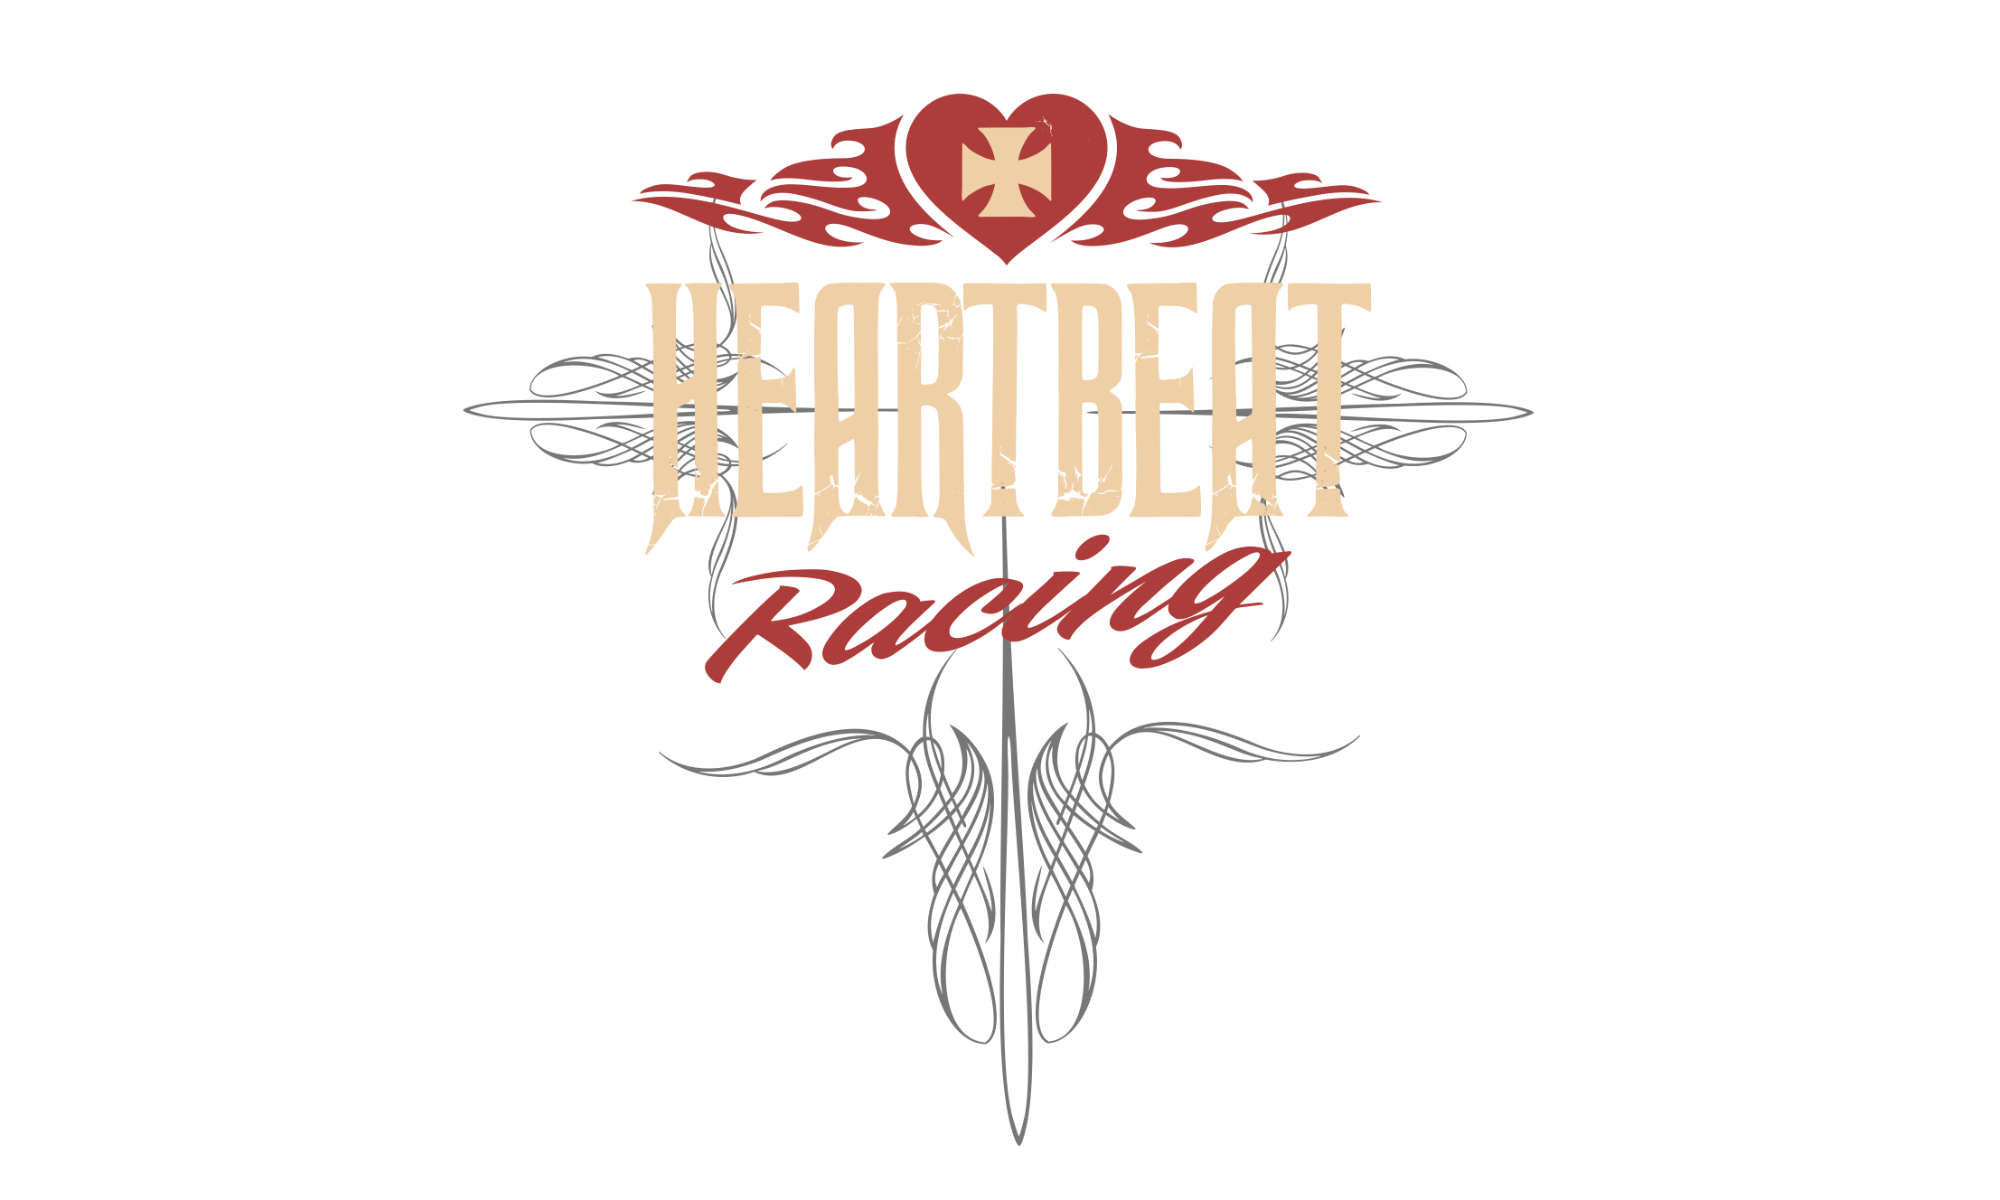 Heartbeat - Racing